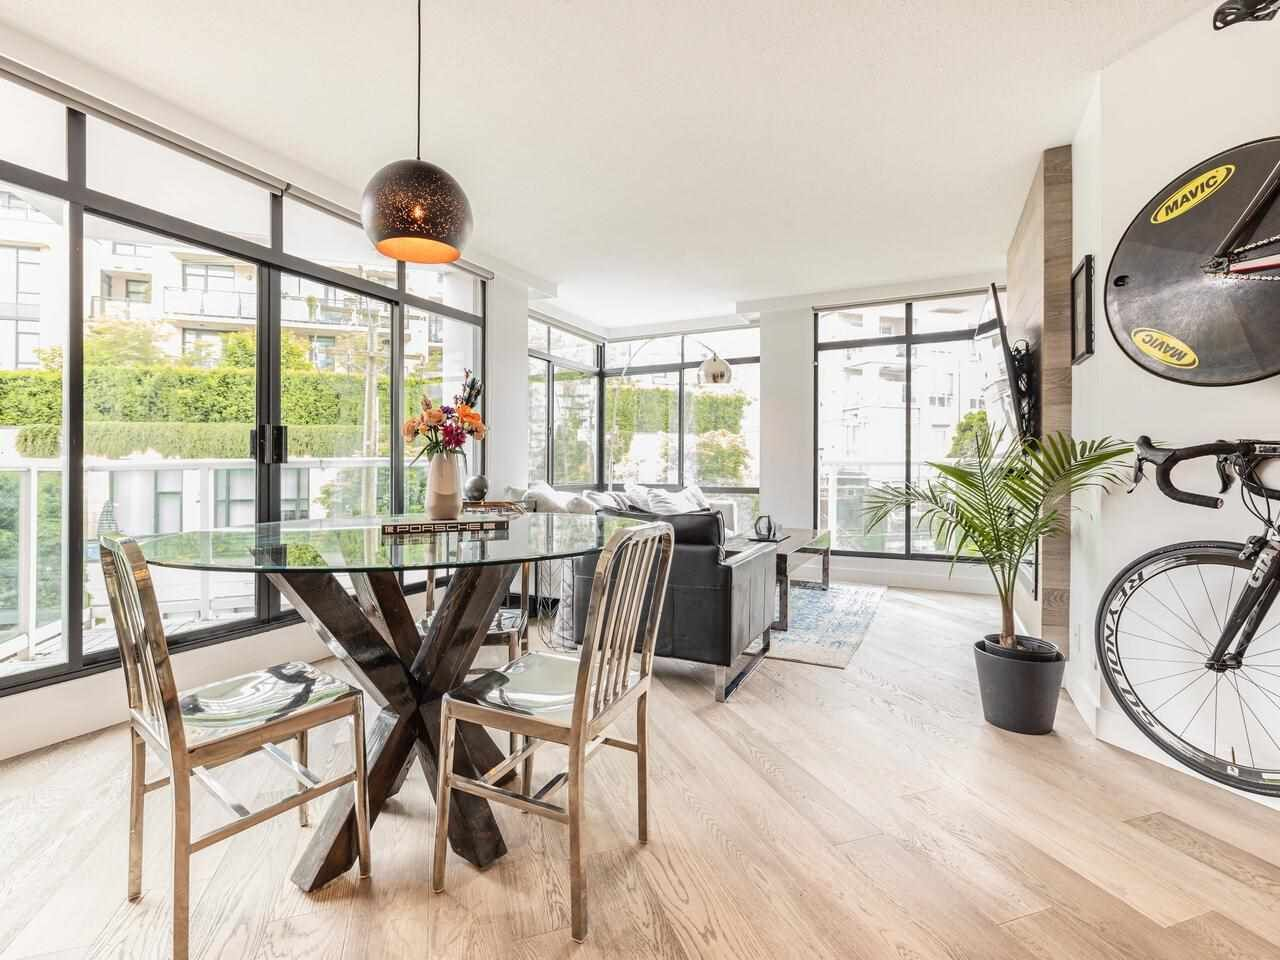 """Main Photo: 503 130 E 2 Street in North Vancouver: Lower Lonsdale Condo for sale in """"The Olympic"""" : MLS®# R2585234"""